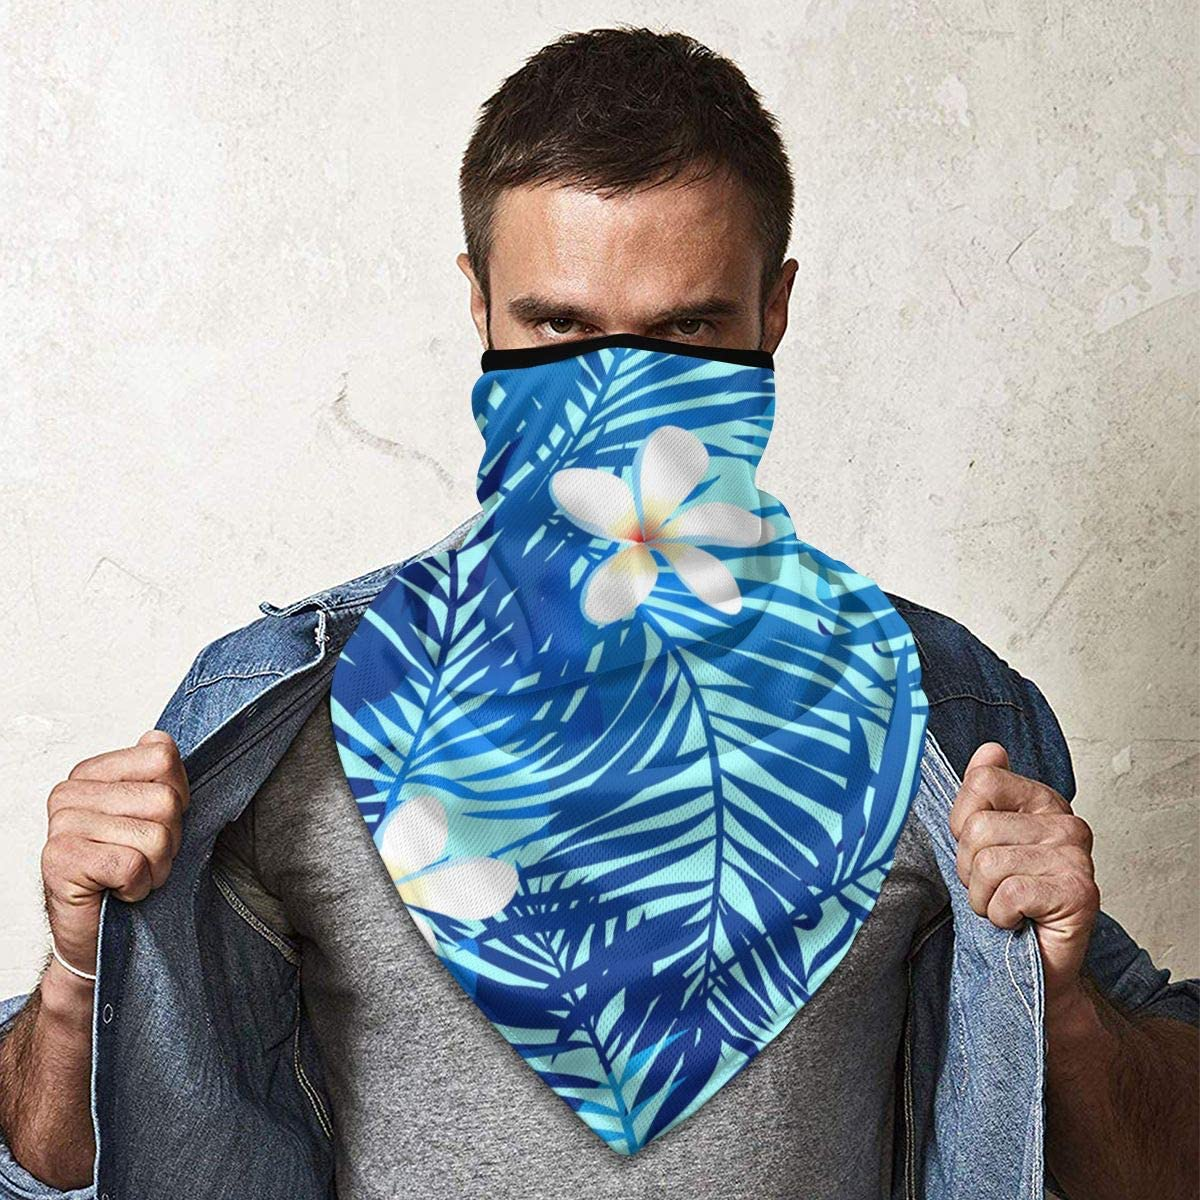 Wind-Resistant Face Mask/& Neck Gaiter,Balaclava Ski Masks,Breathable Tactical Hood,Windproof Face Warmer for Running,Motorcycling,Hiking-Tropical Palms Seamless Pattern in Blue with